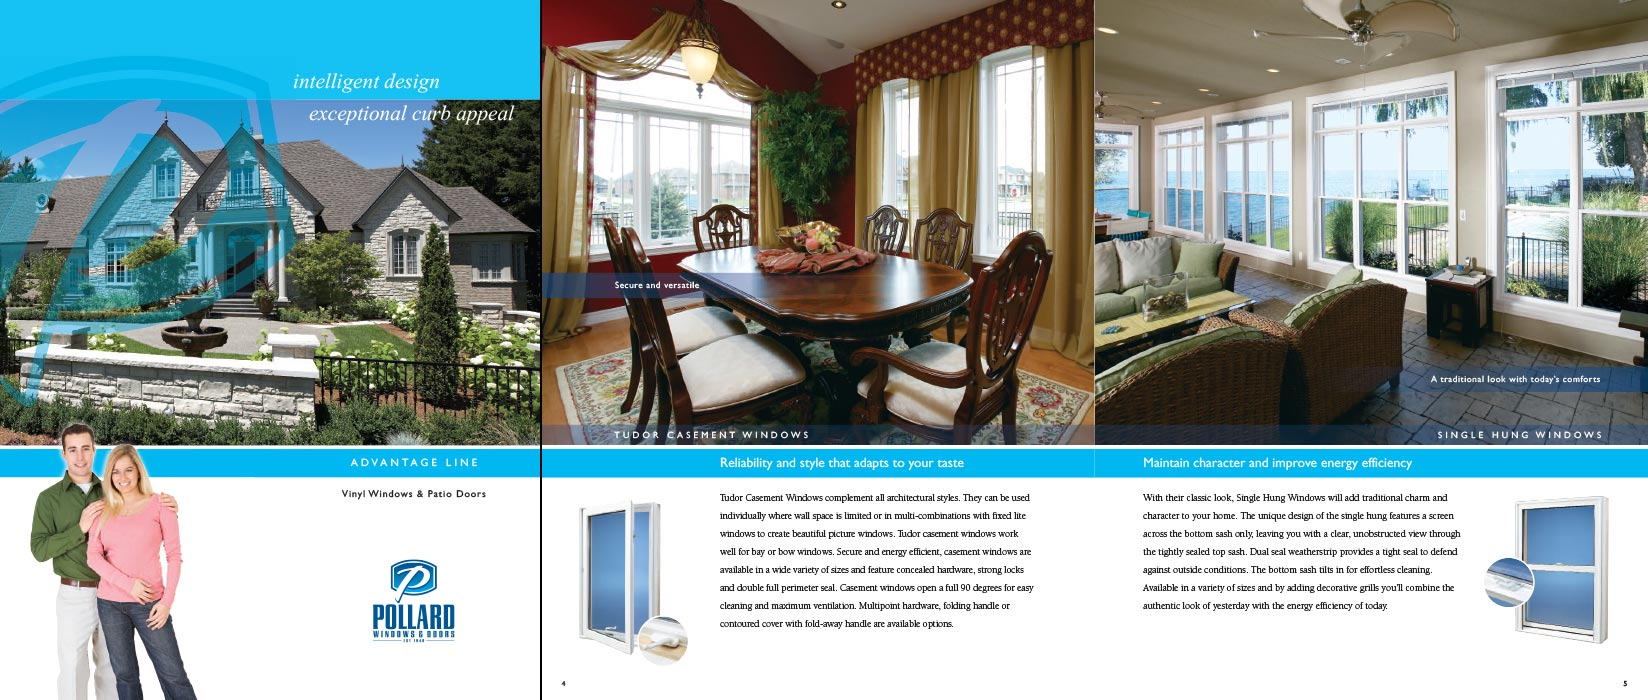 Architectural Photography Of Brochure Advertisement With Windows And  Interior Design Room Settings For Pollard Windows